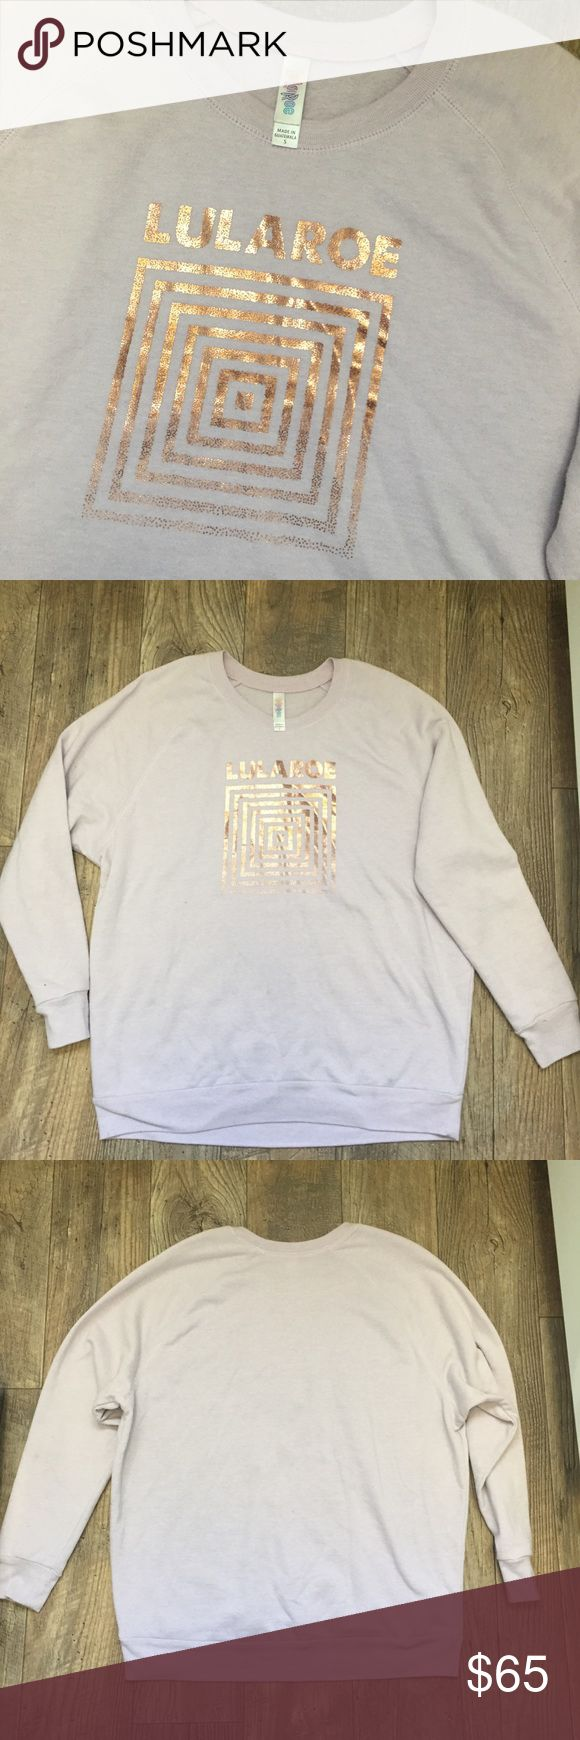 """Lularoe Lavender Gold Square Logo Sweatshirt Small Lularoe Women's Lavender Purple Metallic Rose Gold Square Logo Sweatshirt Small  Women's size S measures 46"""" bust, 40"""" waist, 27"""" length  Runs big, would fit a women's medium  50% Cotton 50% Polyester  Very gently worn- no rips holes or stains!  Awesome Rare item! Perfect to pair with your favorite leggings! LuLaRoe Tops Sweatshirts & Hoodies"""